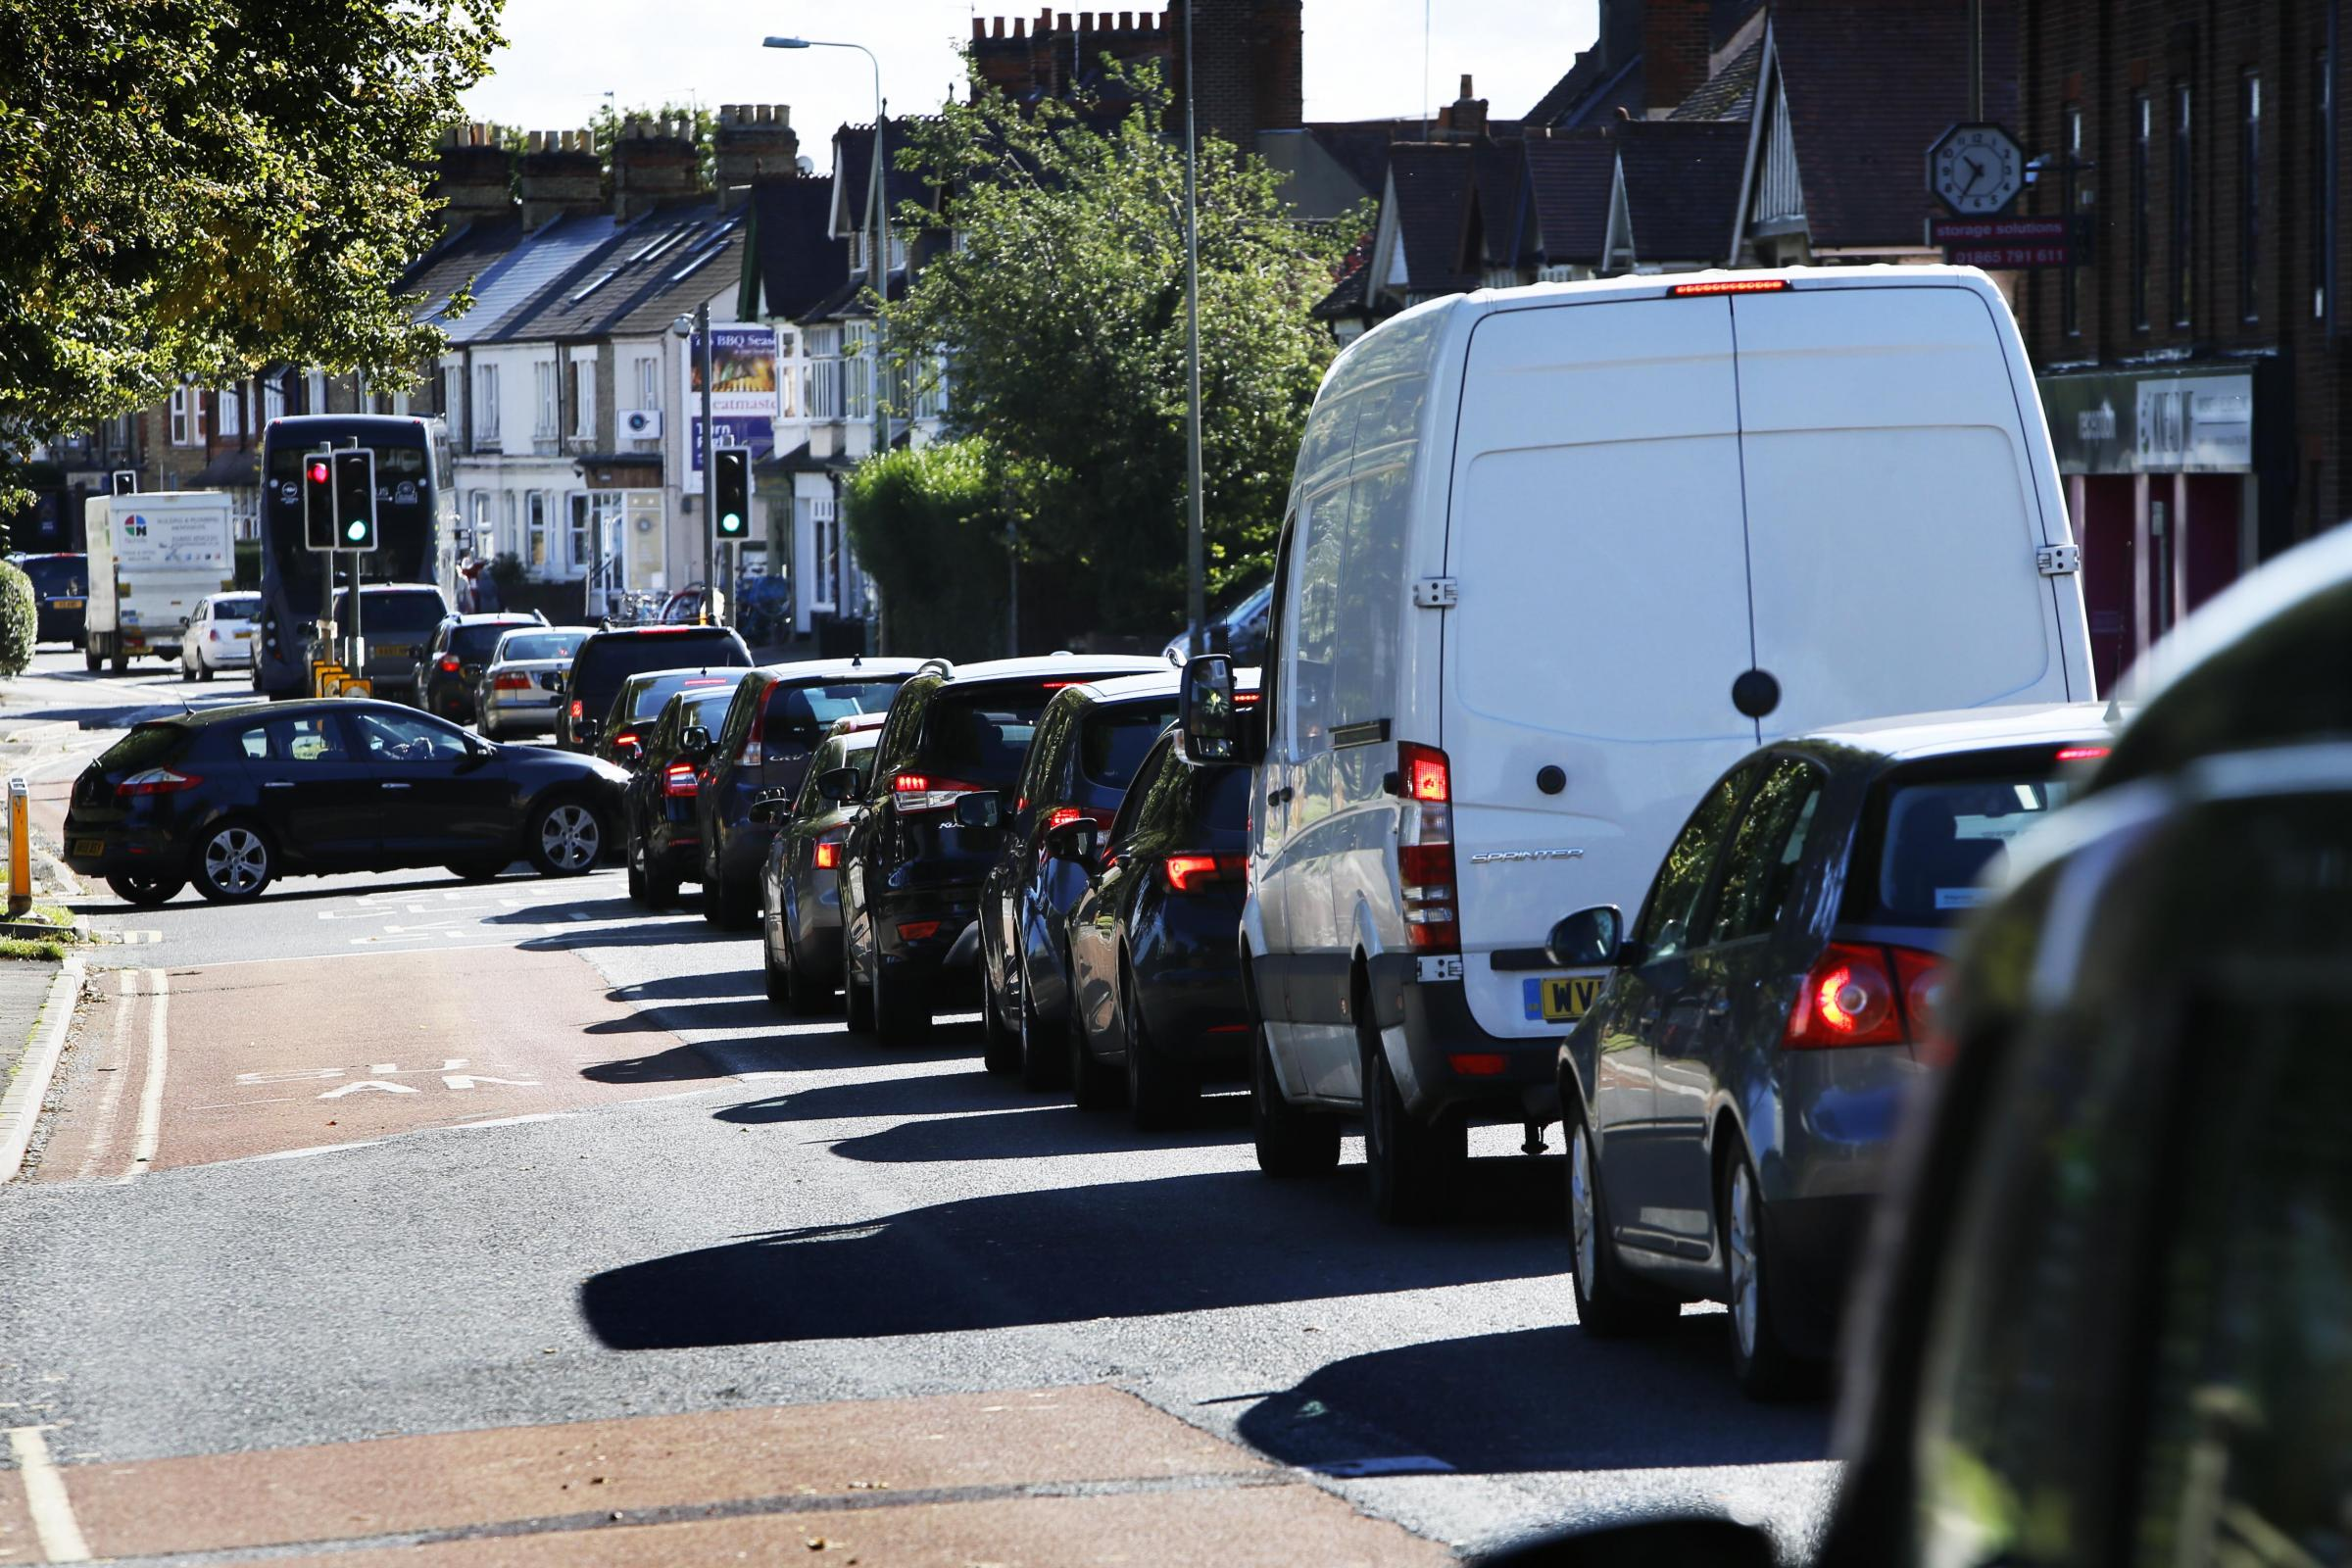 Traffic on Botley Road earlier today. Pic: Ed Nix